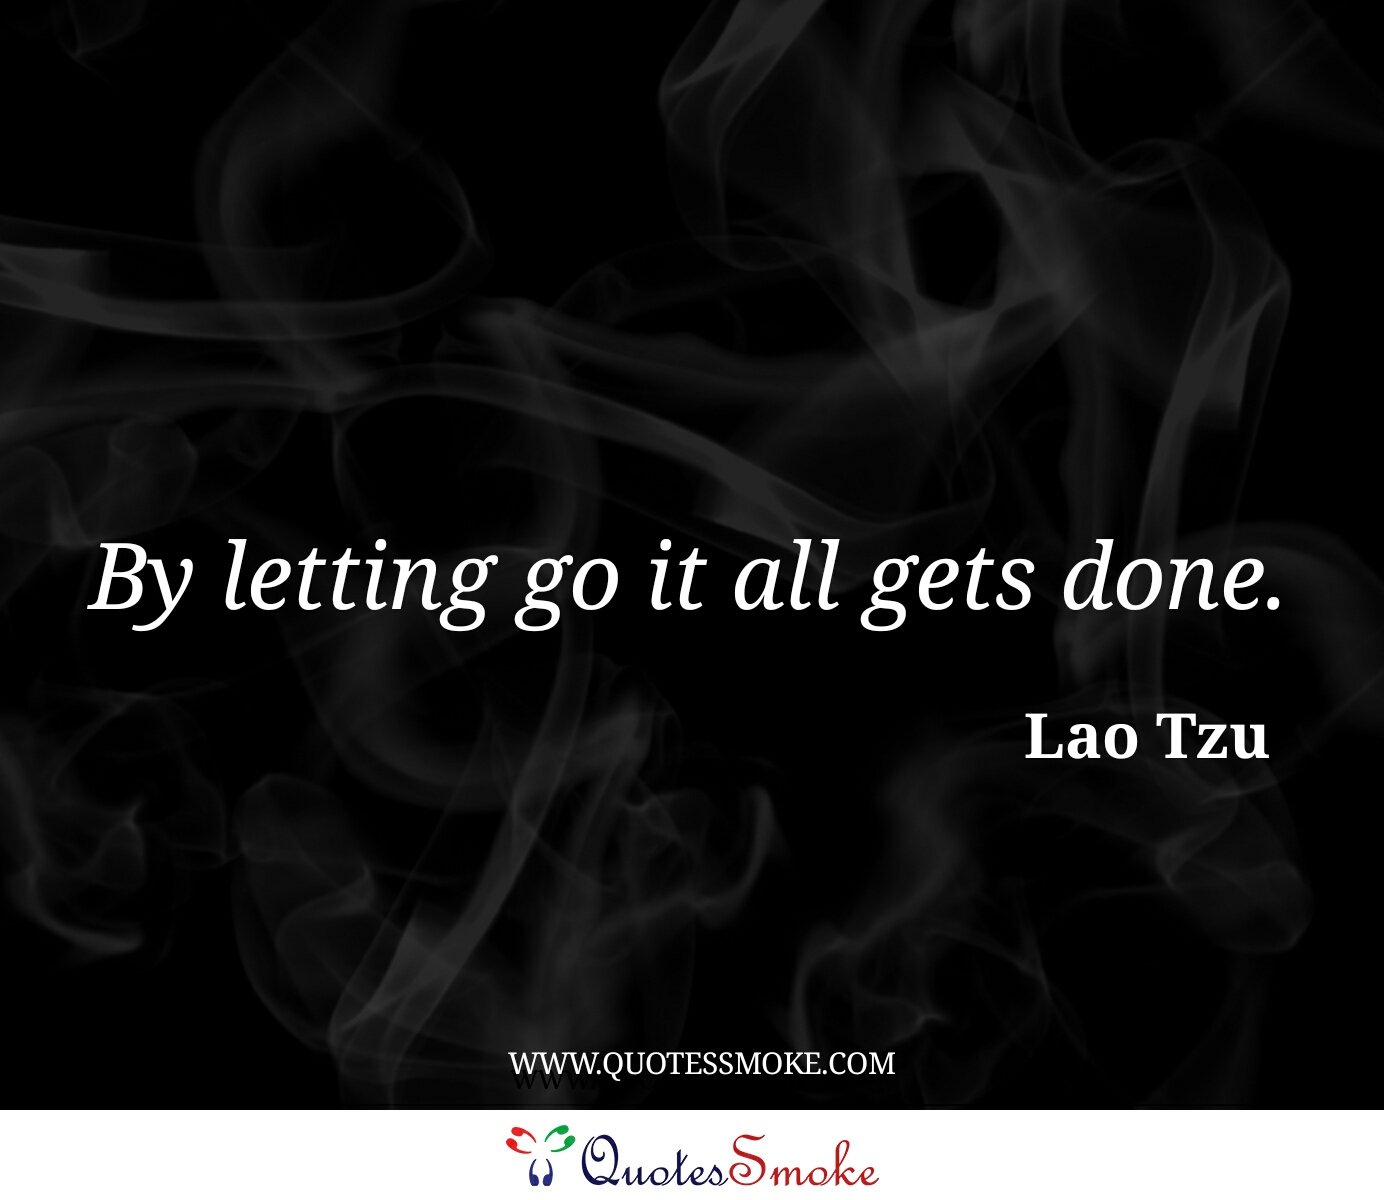 Quotes About Smoking 109 Lao Tzu Quotes That Will Influence Your Thinking  Quotes Smoke